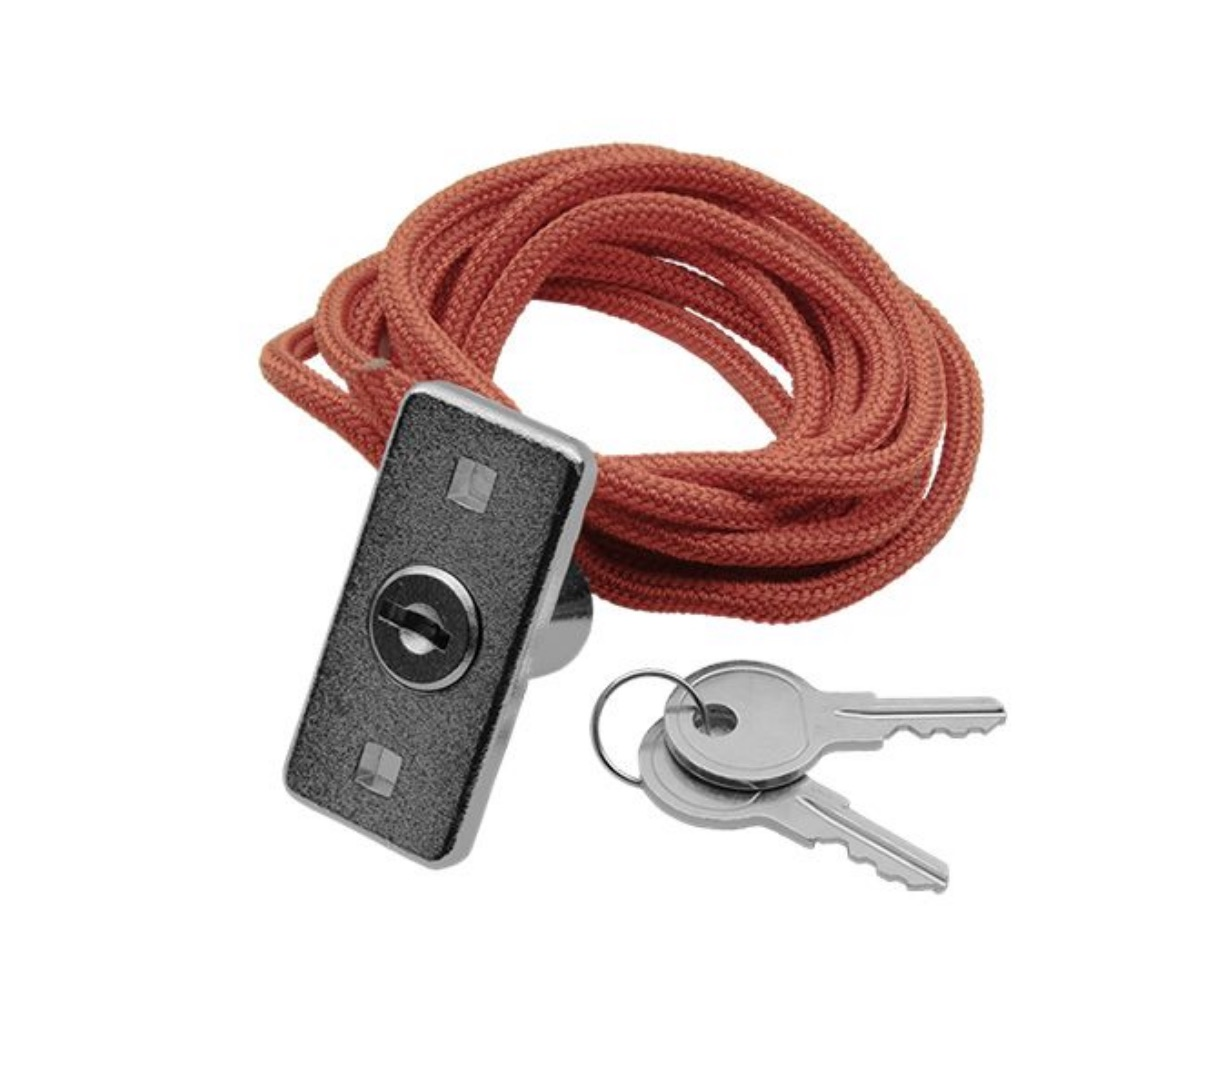 Chamberlain Liftmaster Emergency Release Device (Flat Key Type)